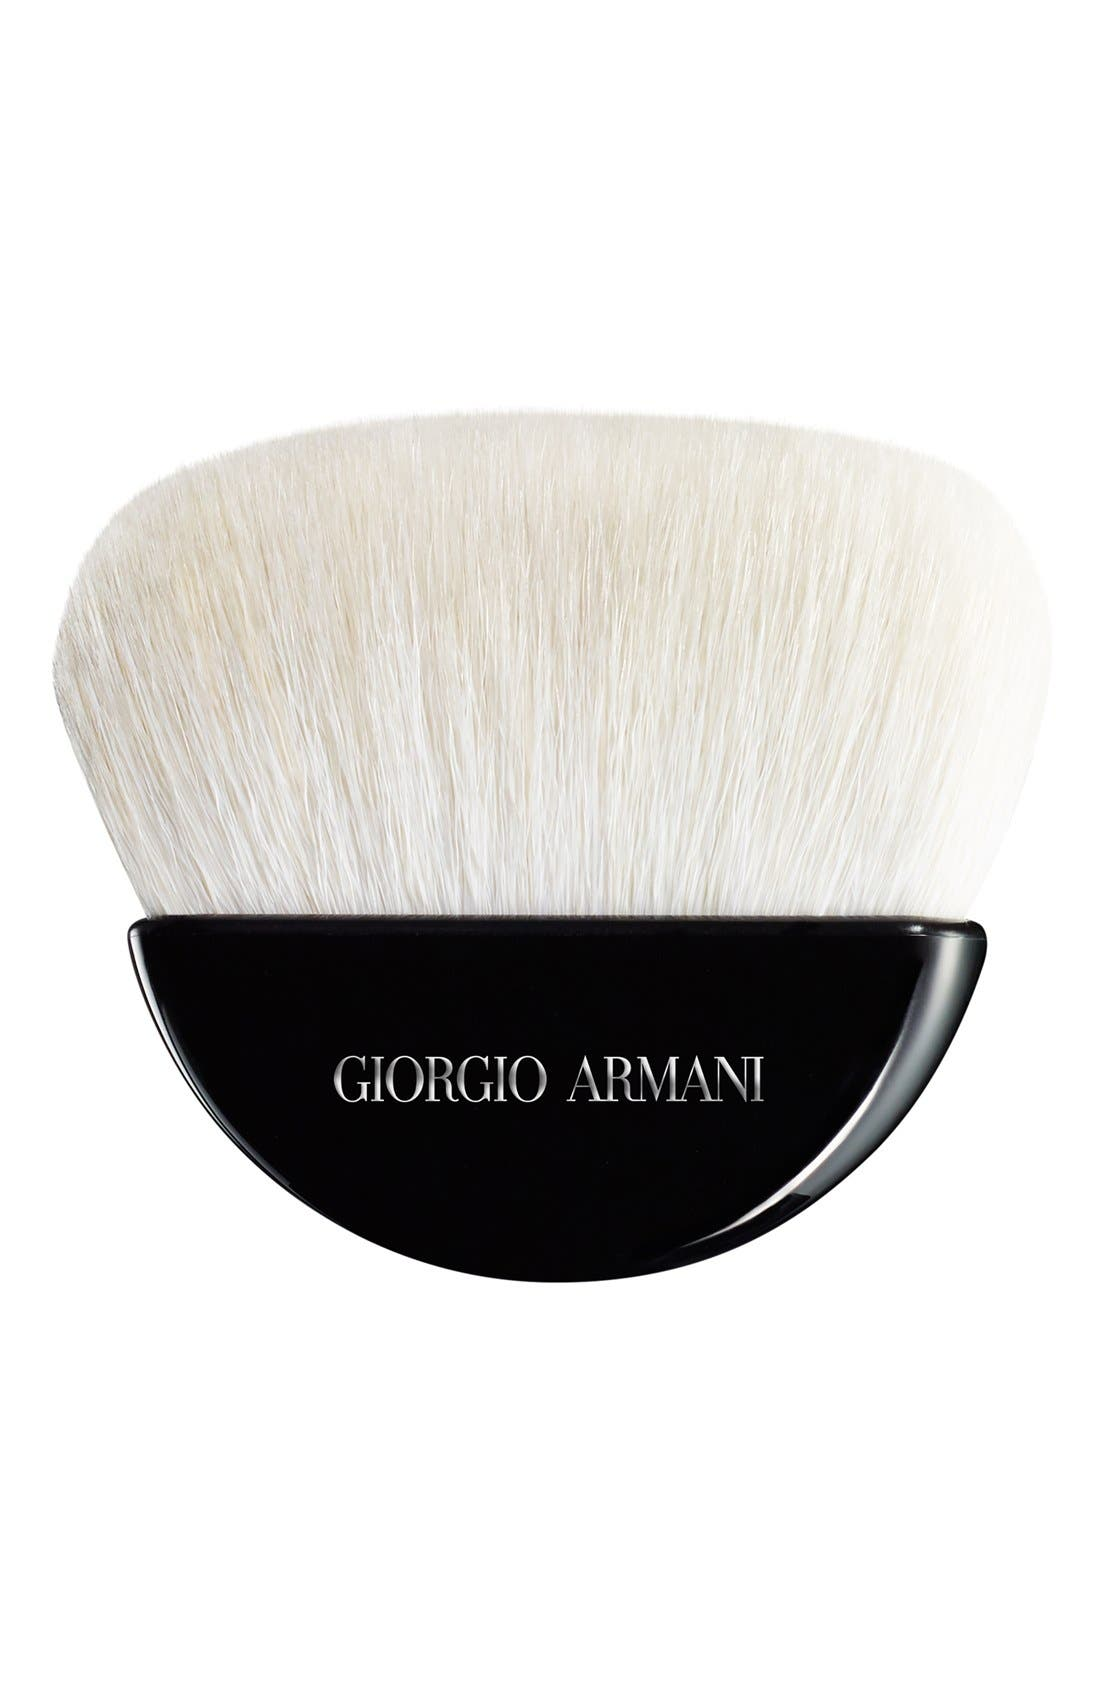 'Maestro' Sculpting Powder Brush,                         Main,                         color, NO COLOR